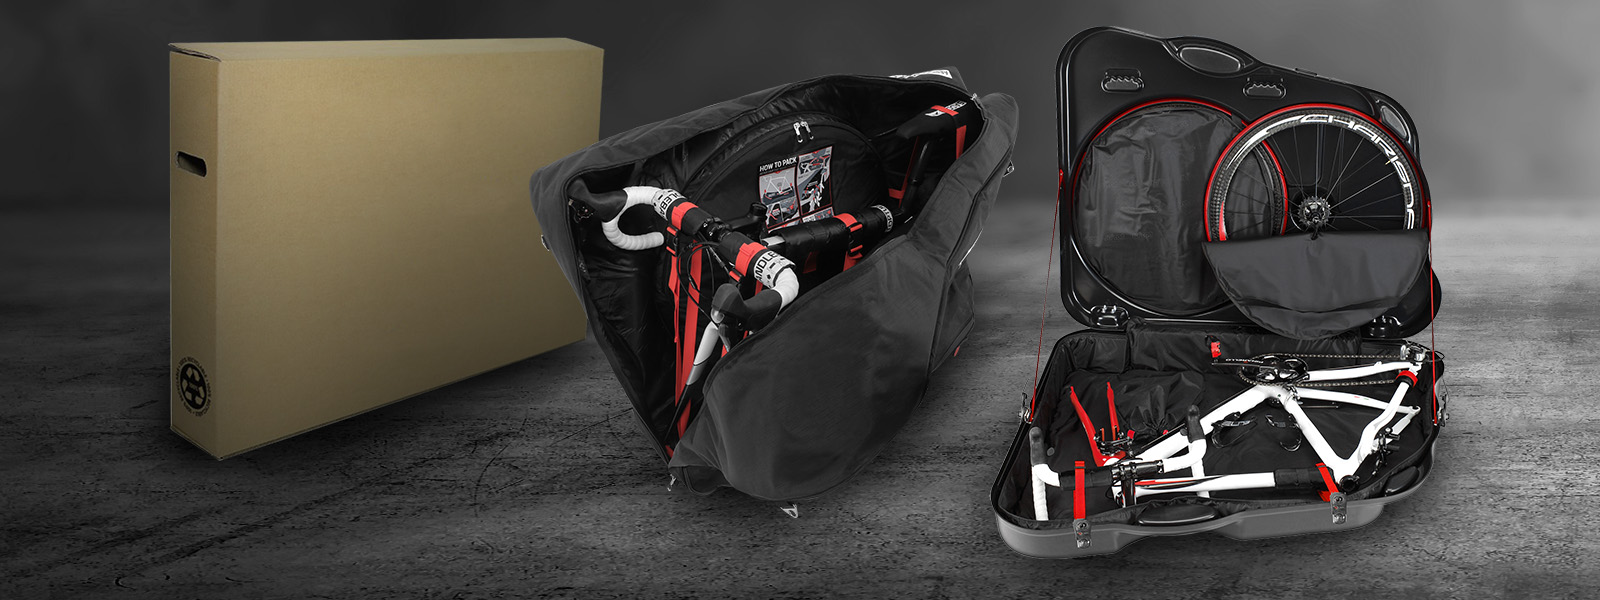 SCI Con bike bag vs box vs bike case info